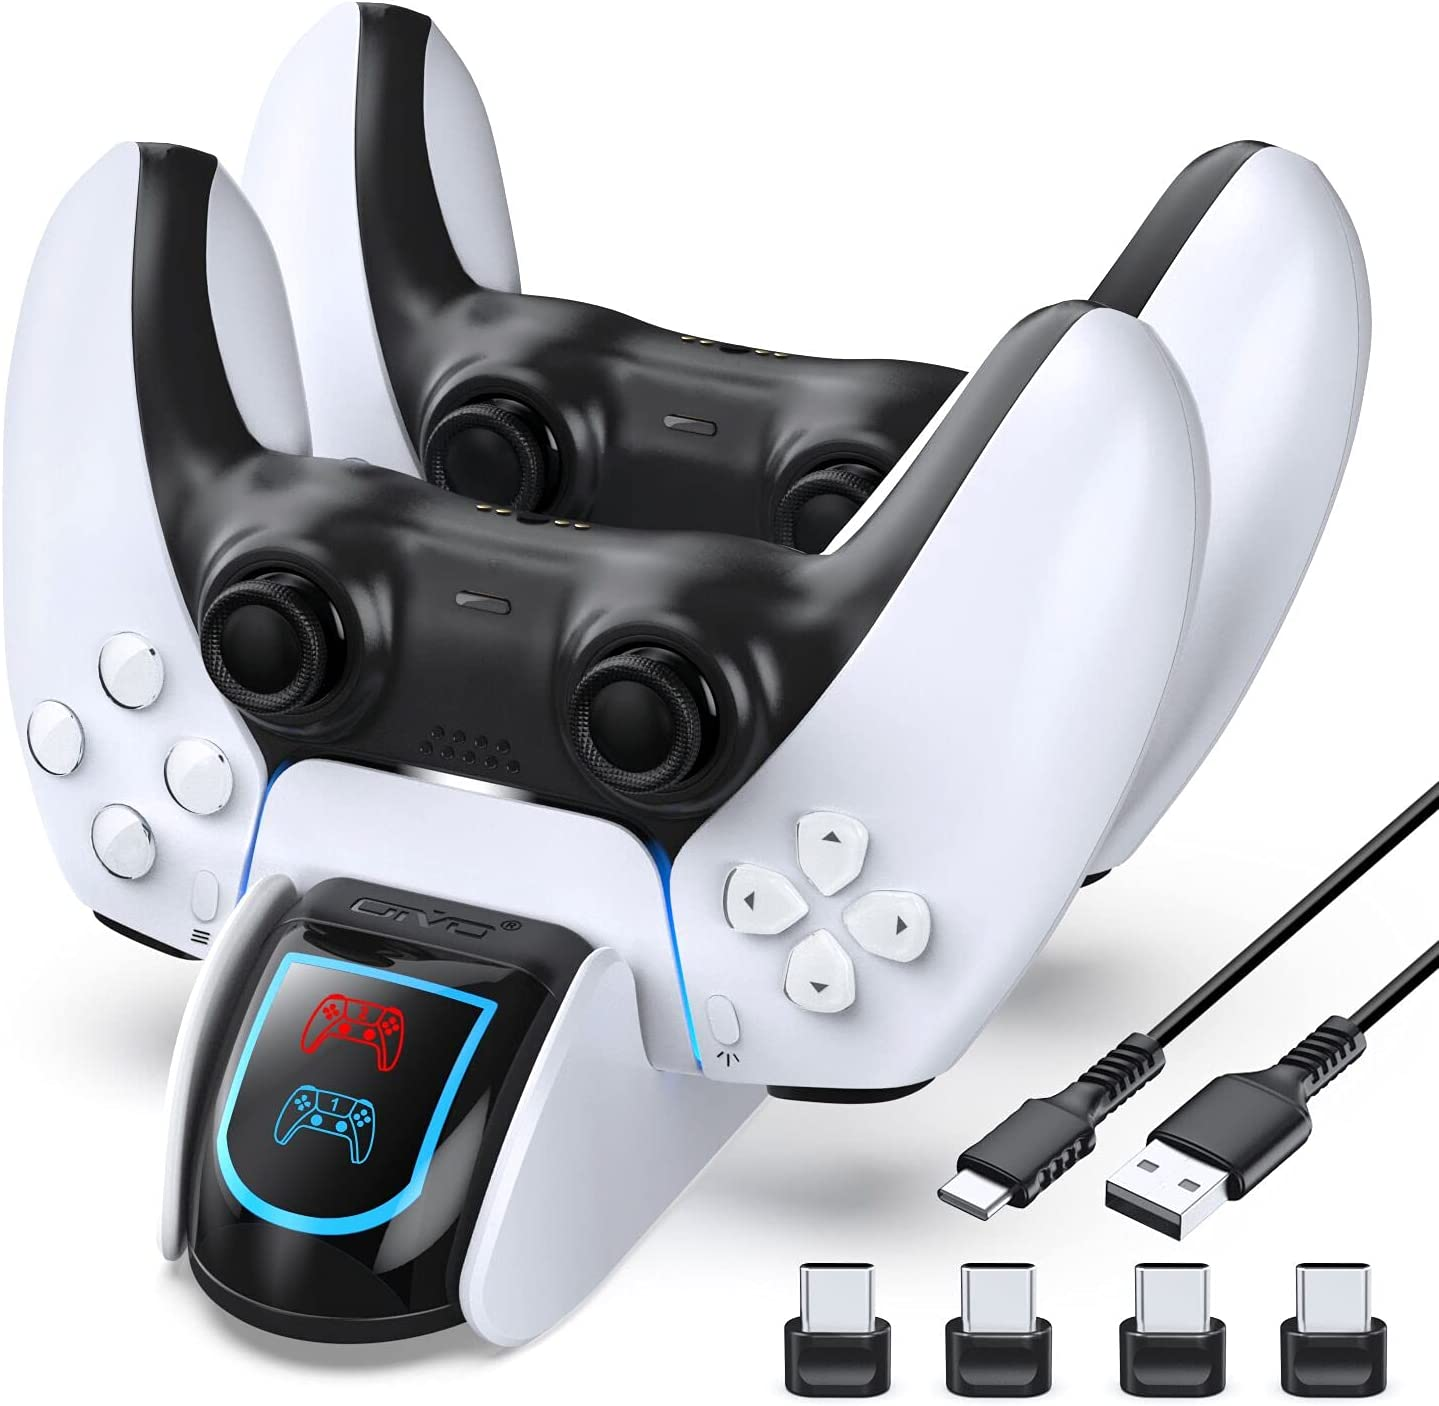 PS5 Charging Station OIVO Max 74% OFF Selling Dock Controller Charger R